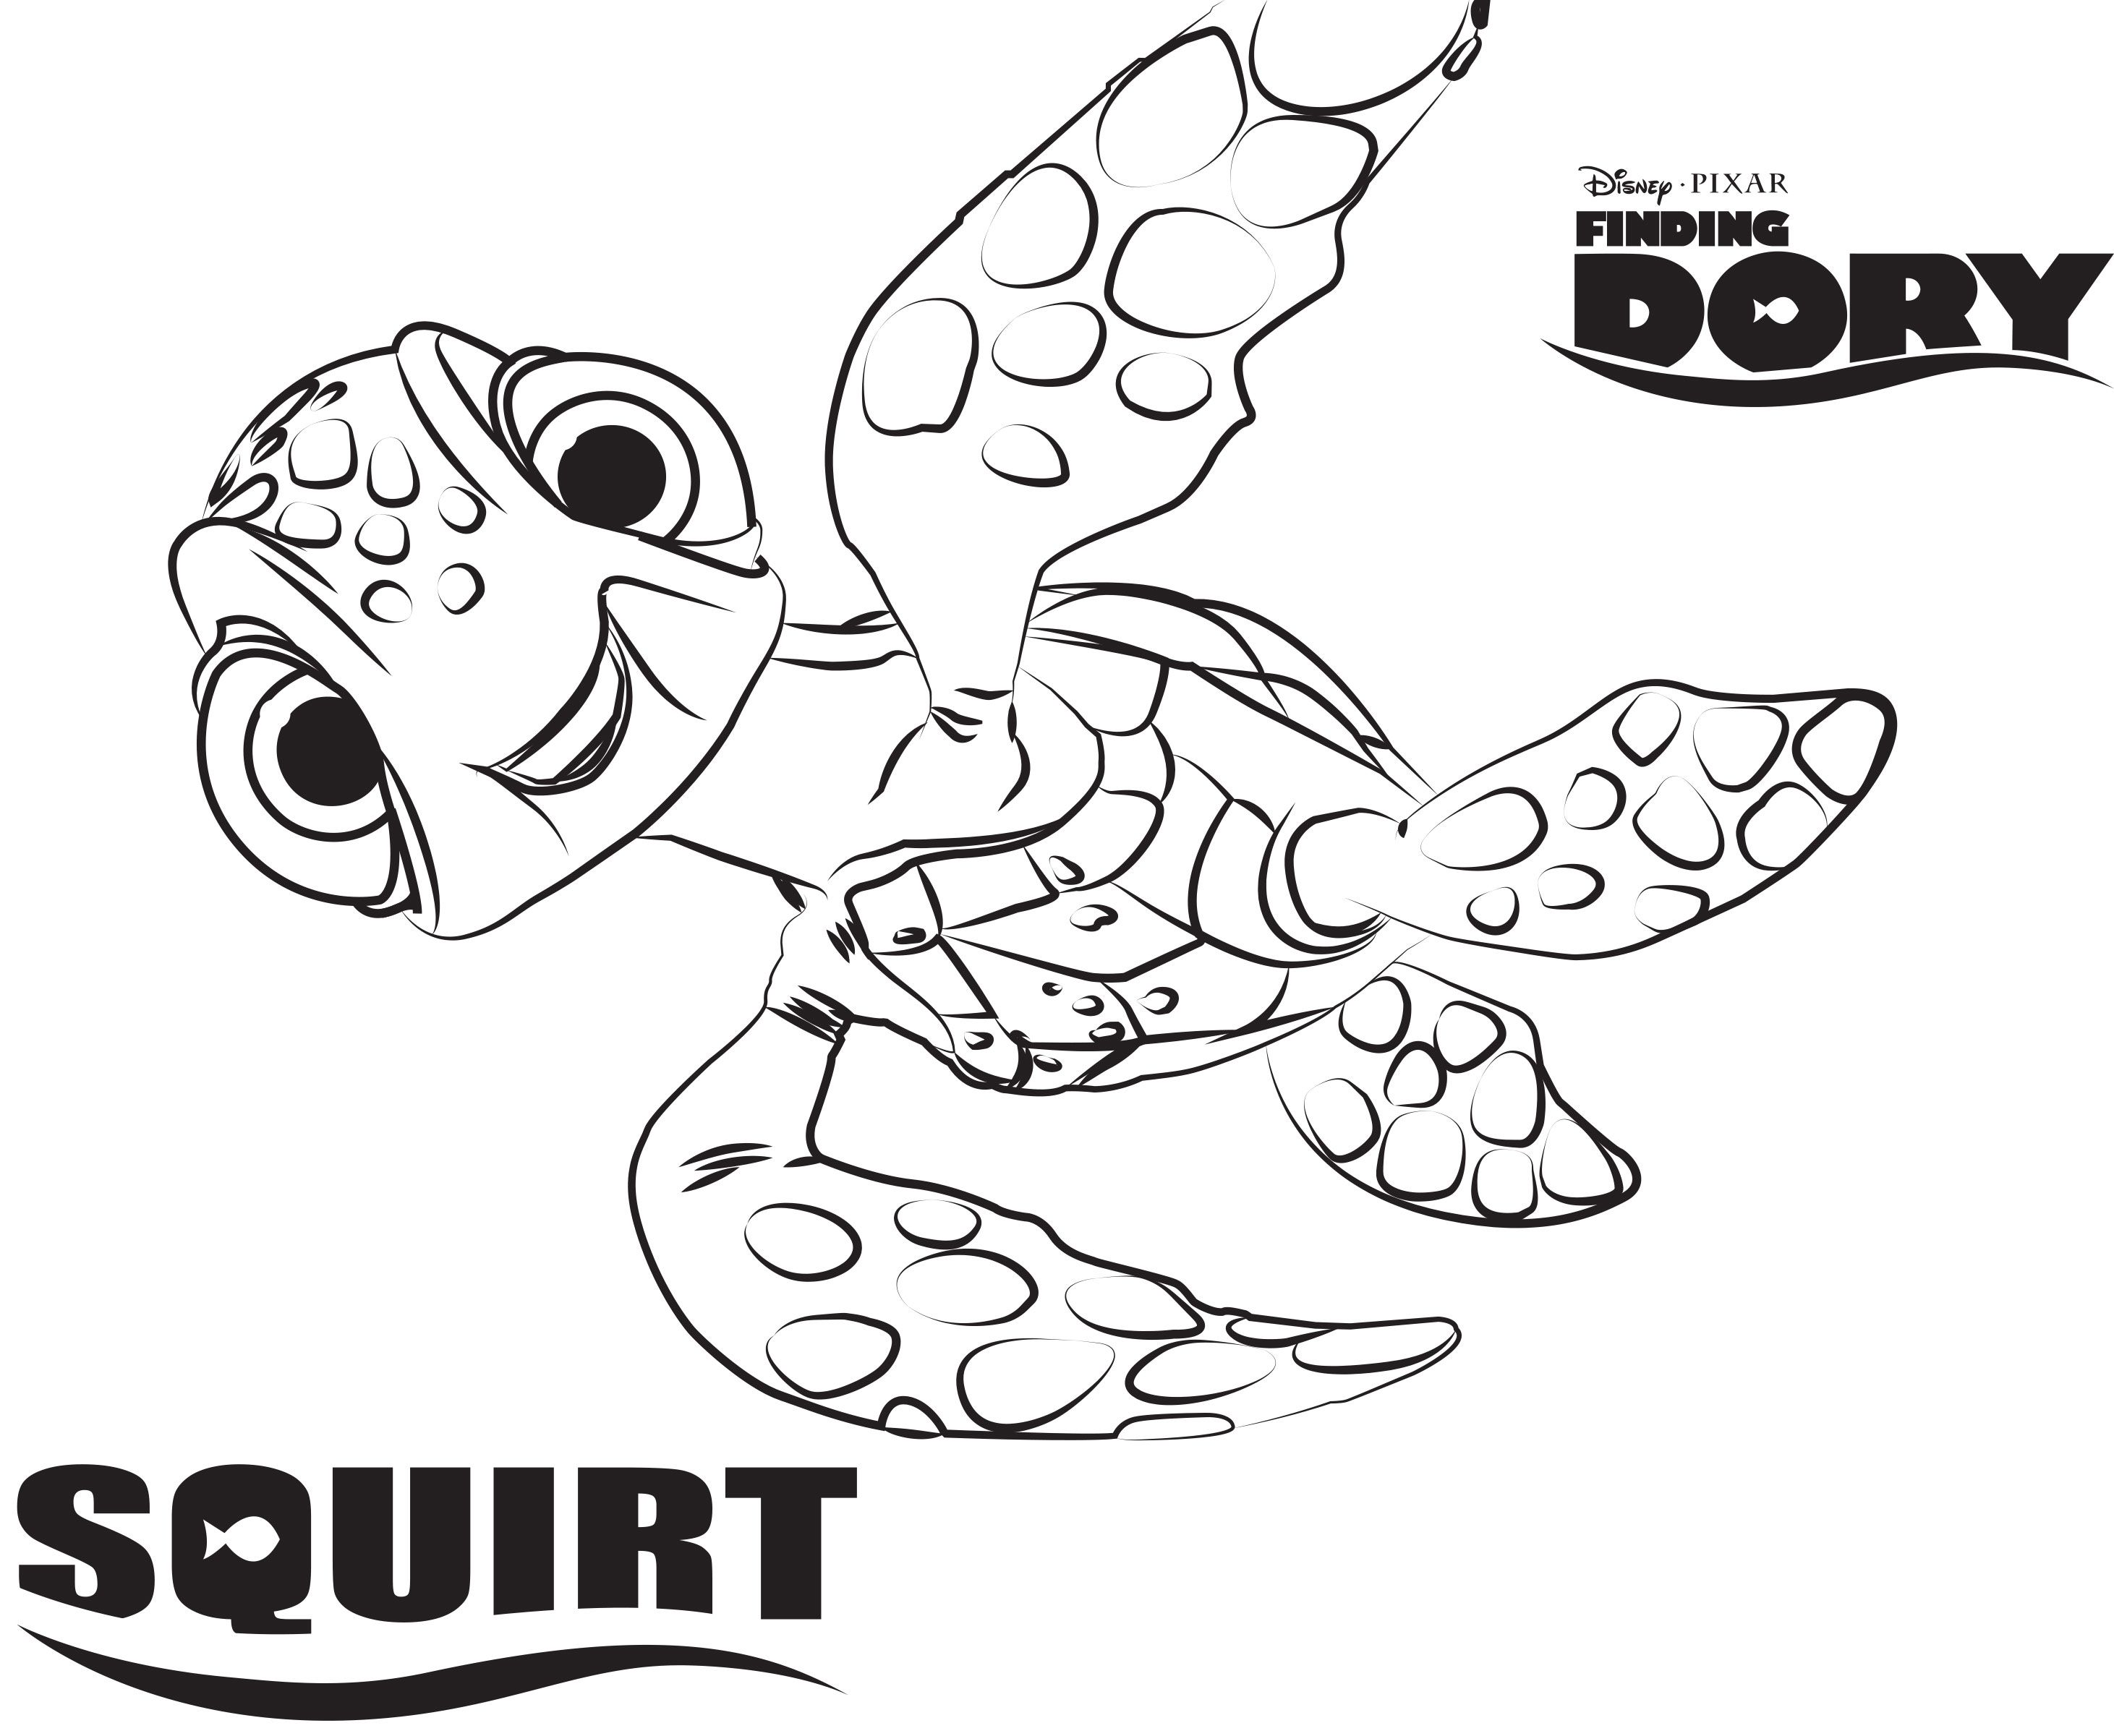 Disney\'s Finding Dory Coloring Pages Sheet, Free Disney Printable ...